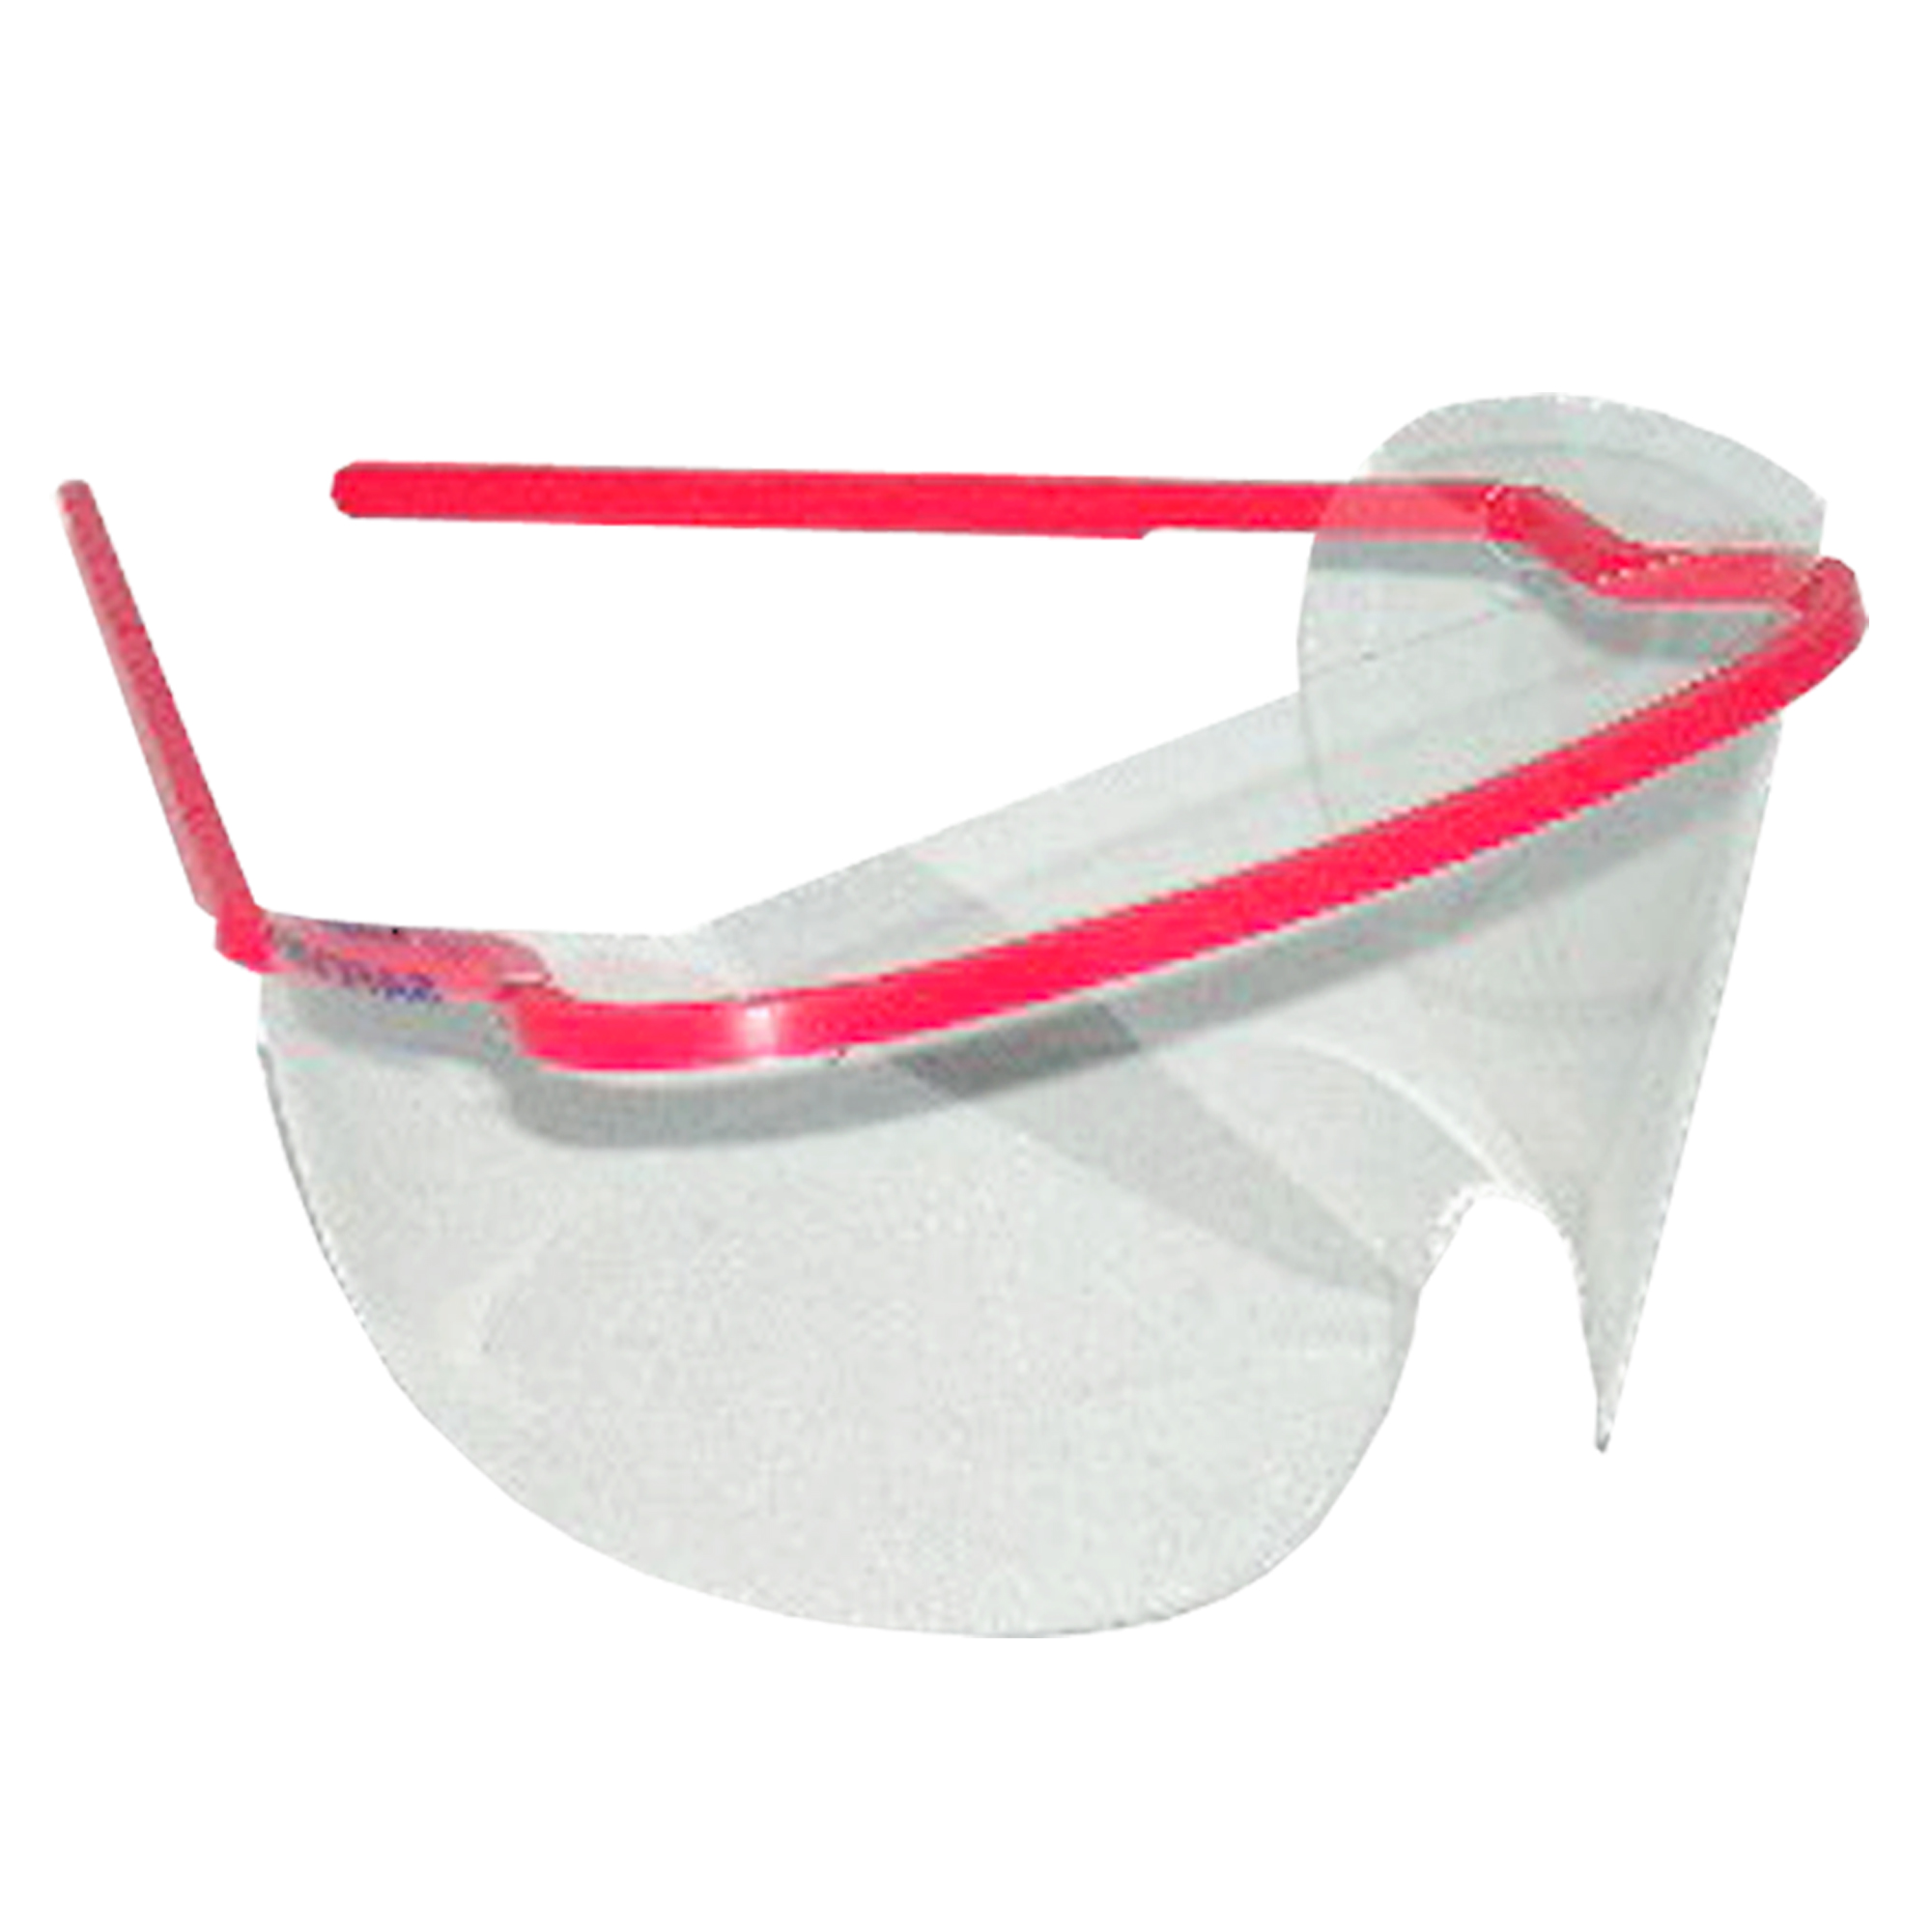 Frame for Safety Goggles Image